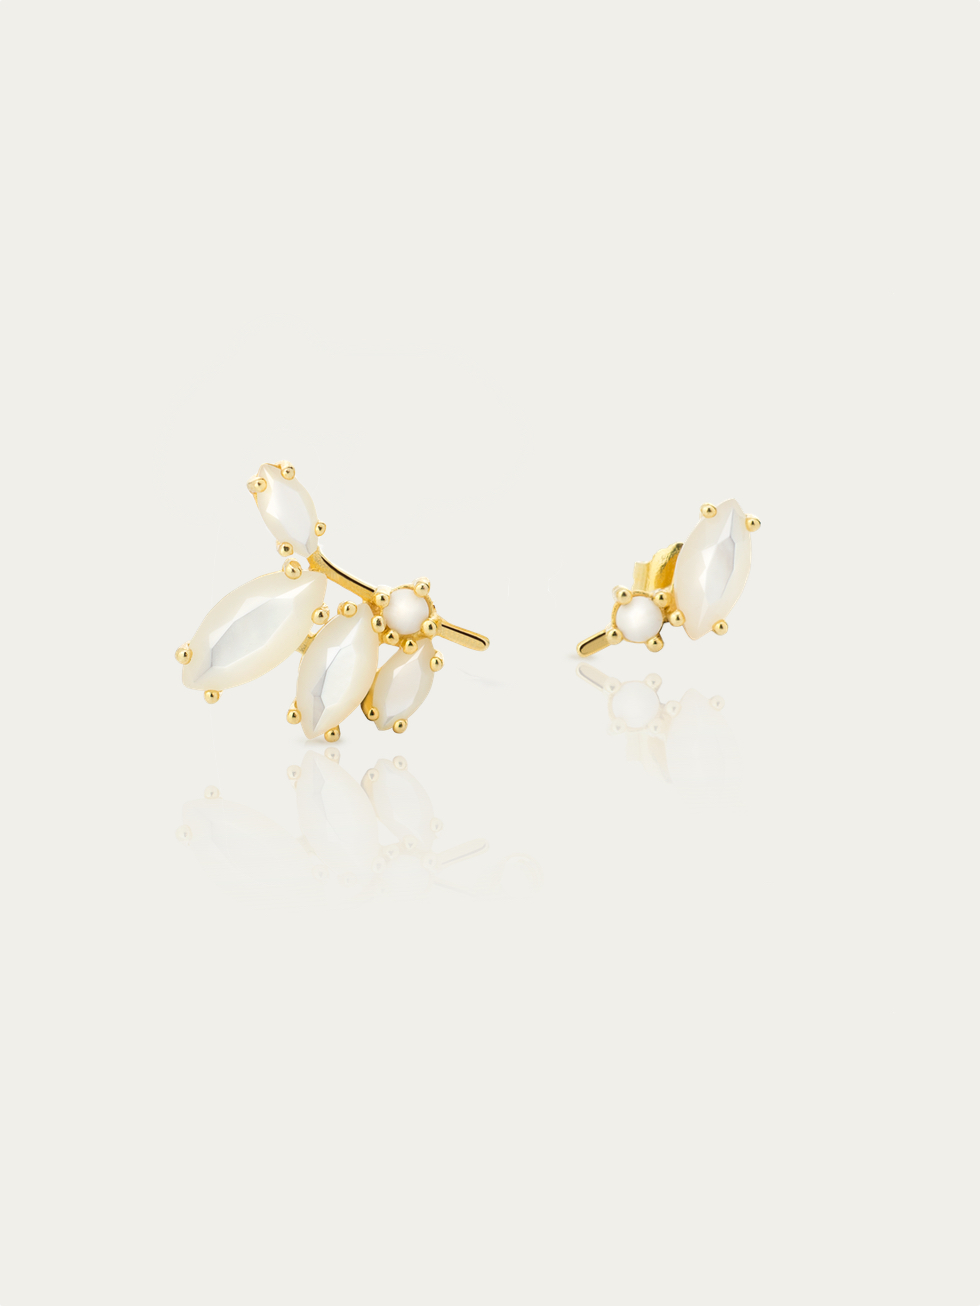 Boucles d'oreilles ISABEL white or